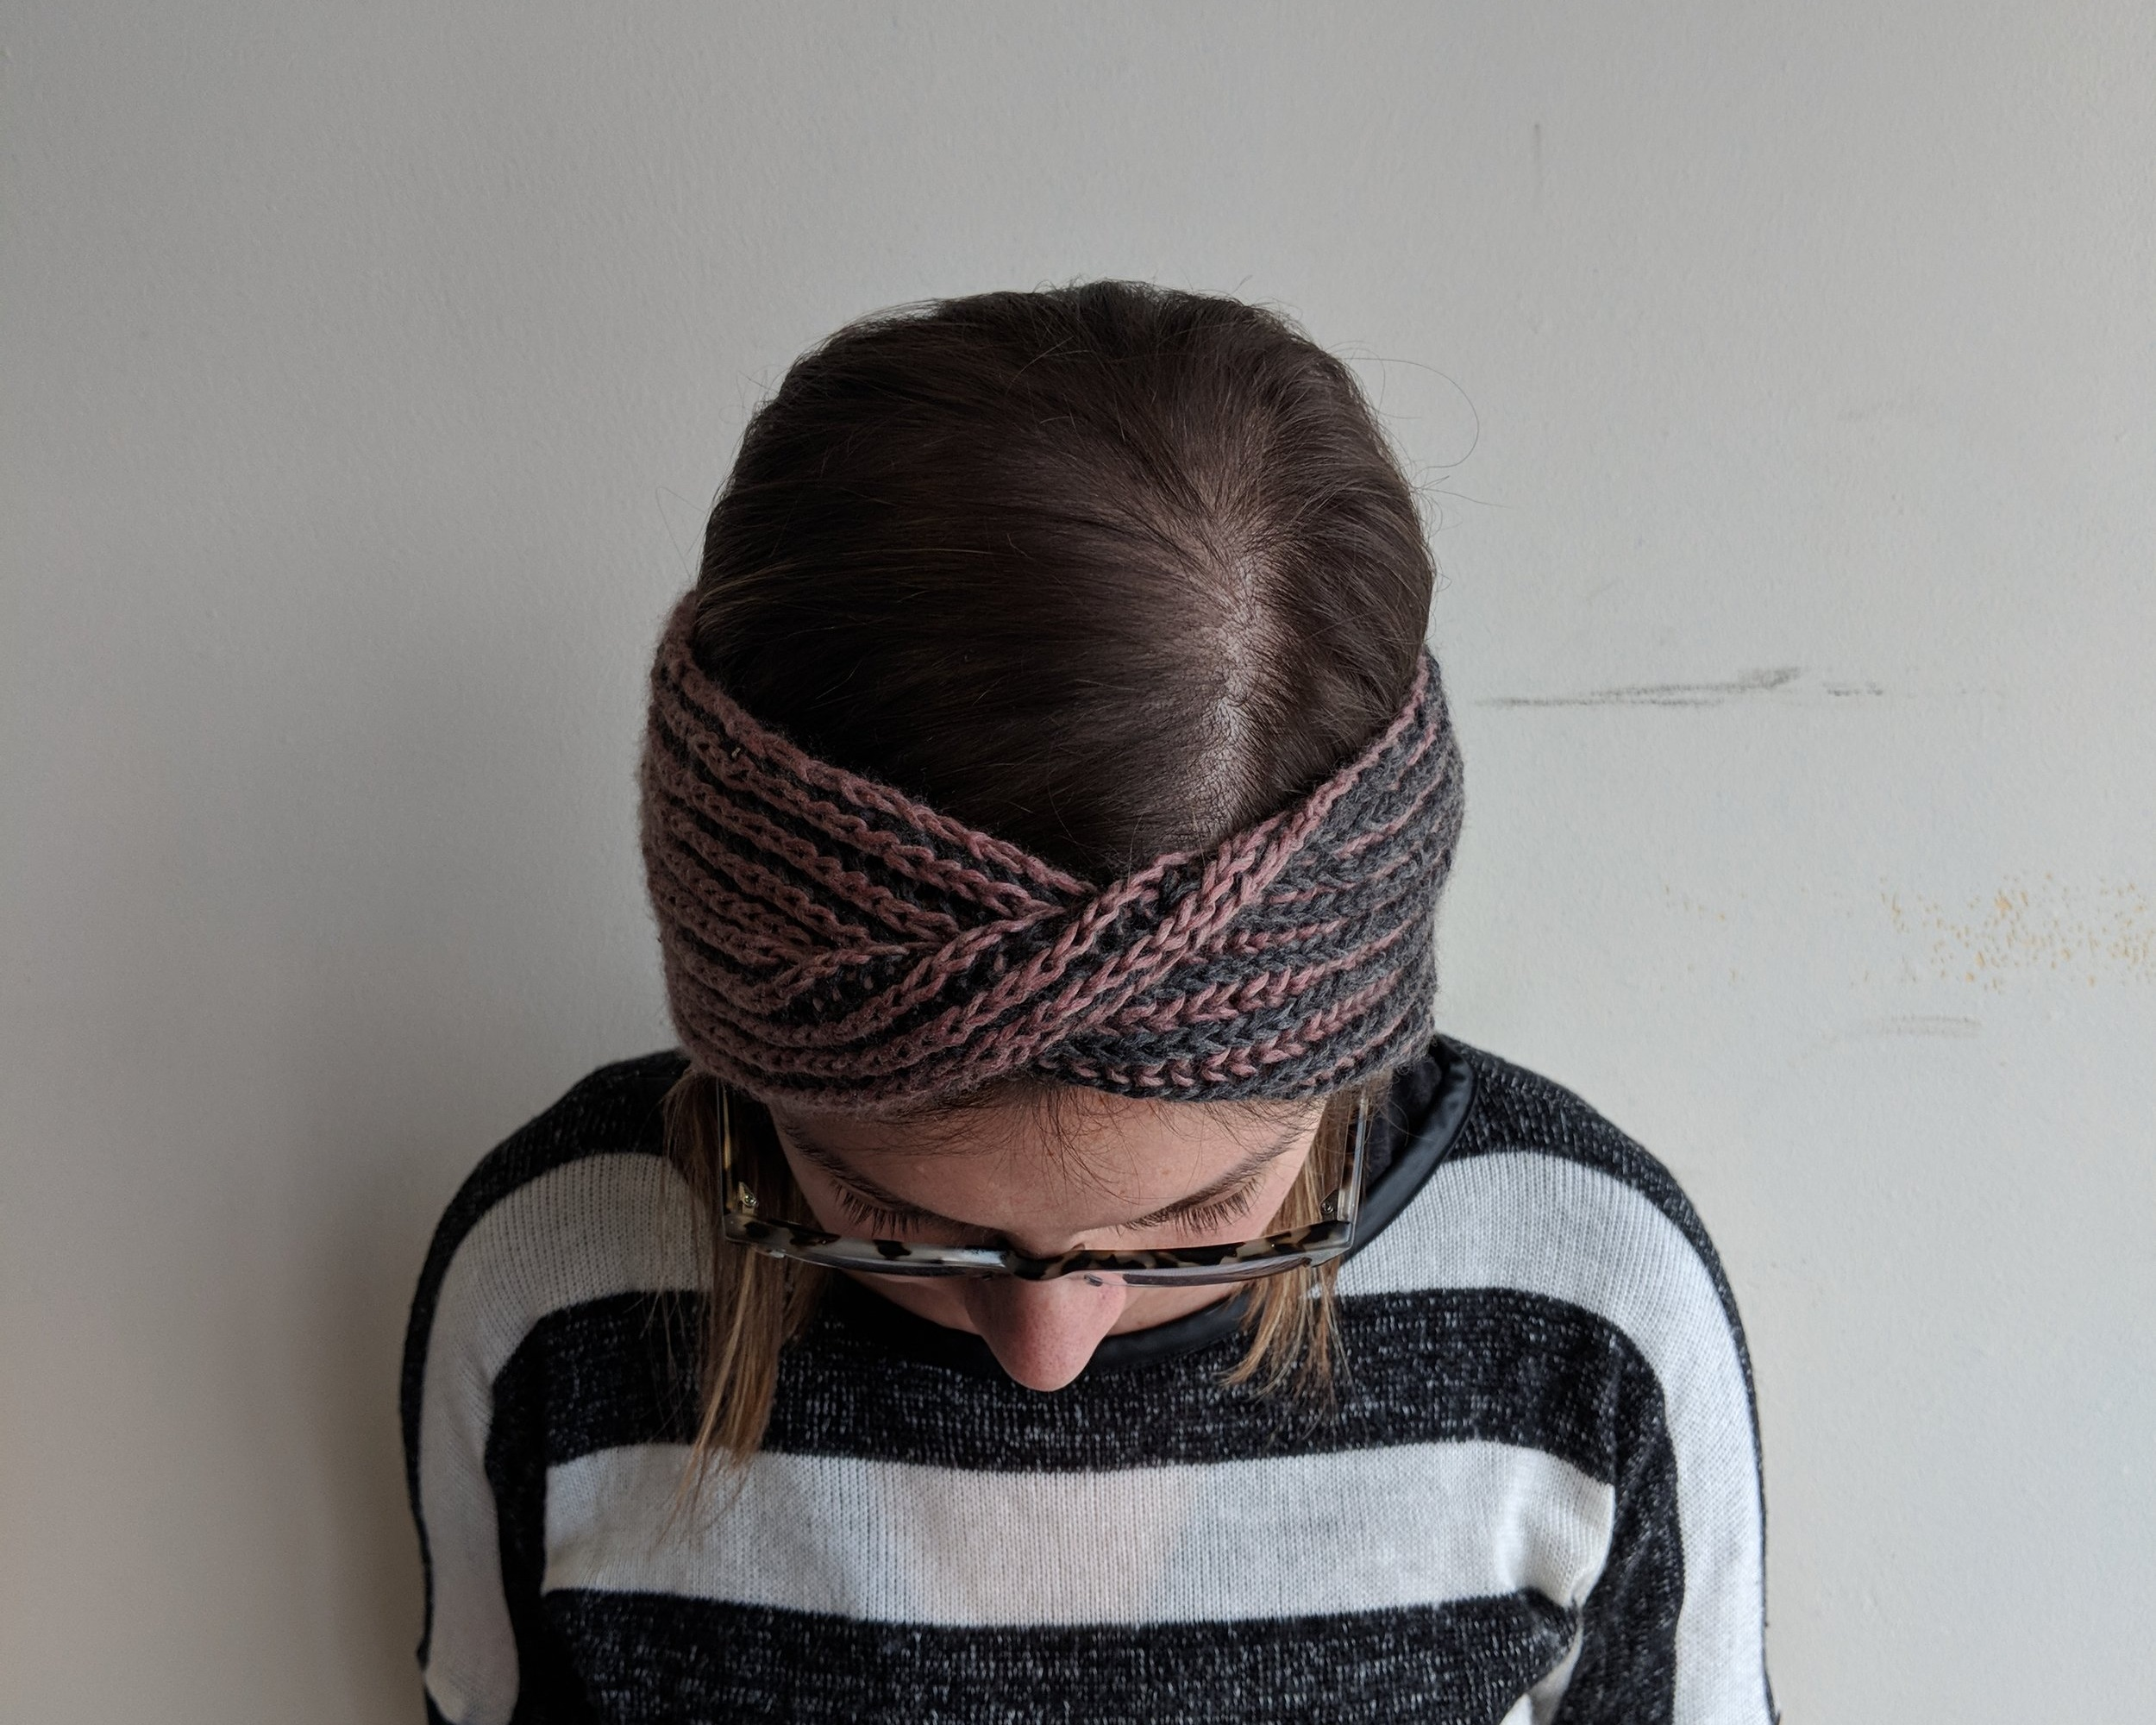 Hot cross bun band - I designed the Hot Cross Bun Band to show off the reversibility of simple two color brioche. This headband also makes a great project for those just jumping into to brioche knitting.Ellen Coy - Ellen Rose Knits#hotcrossbunband #ellenroseknits